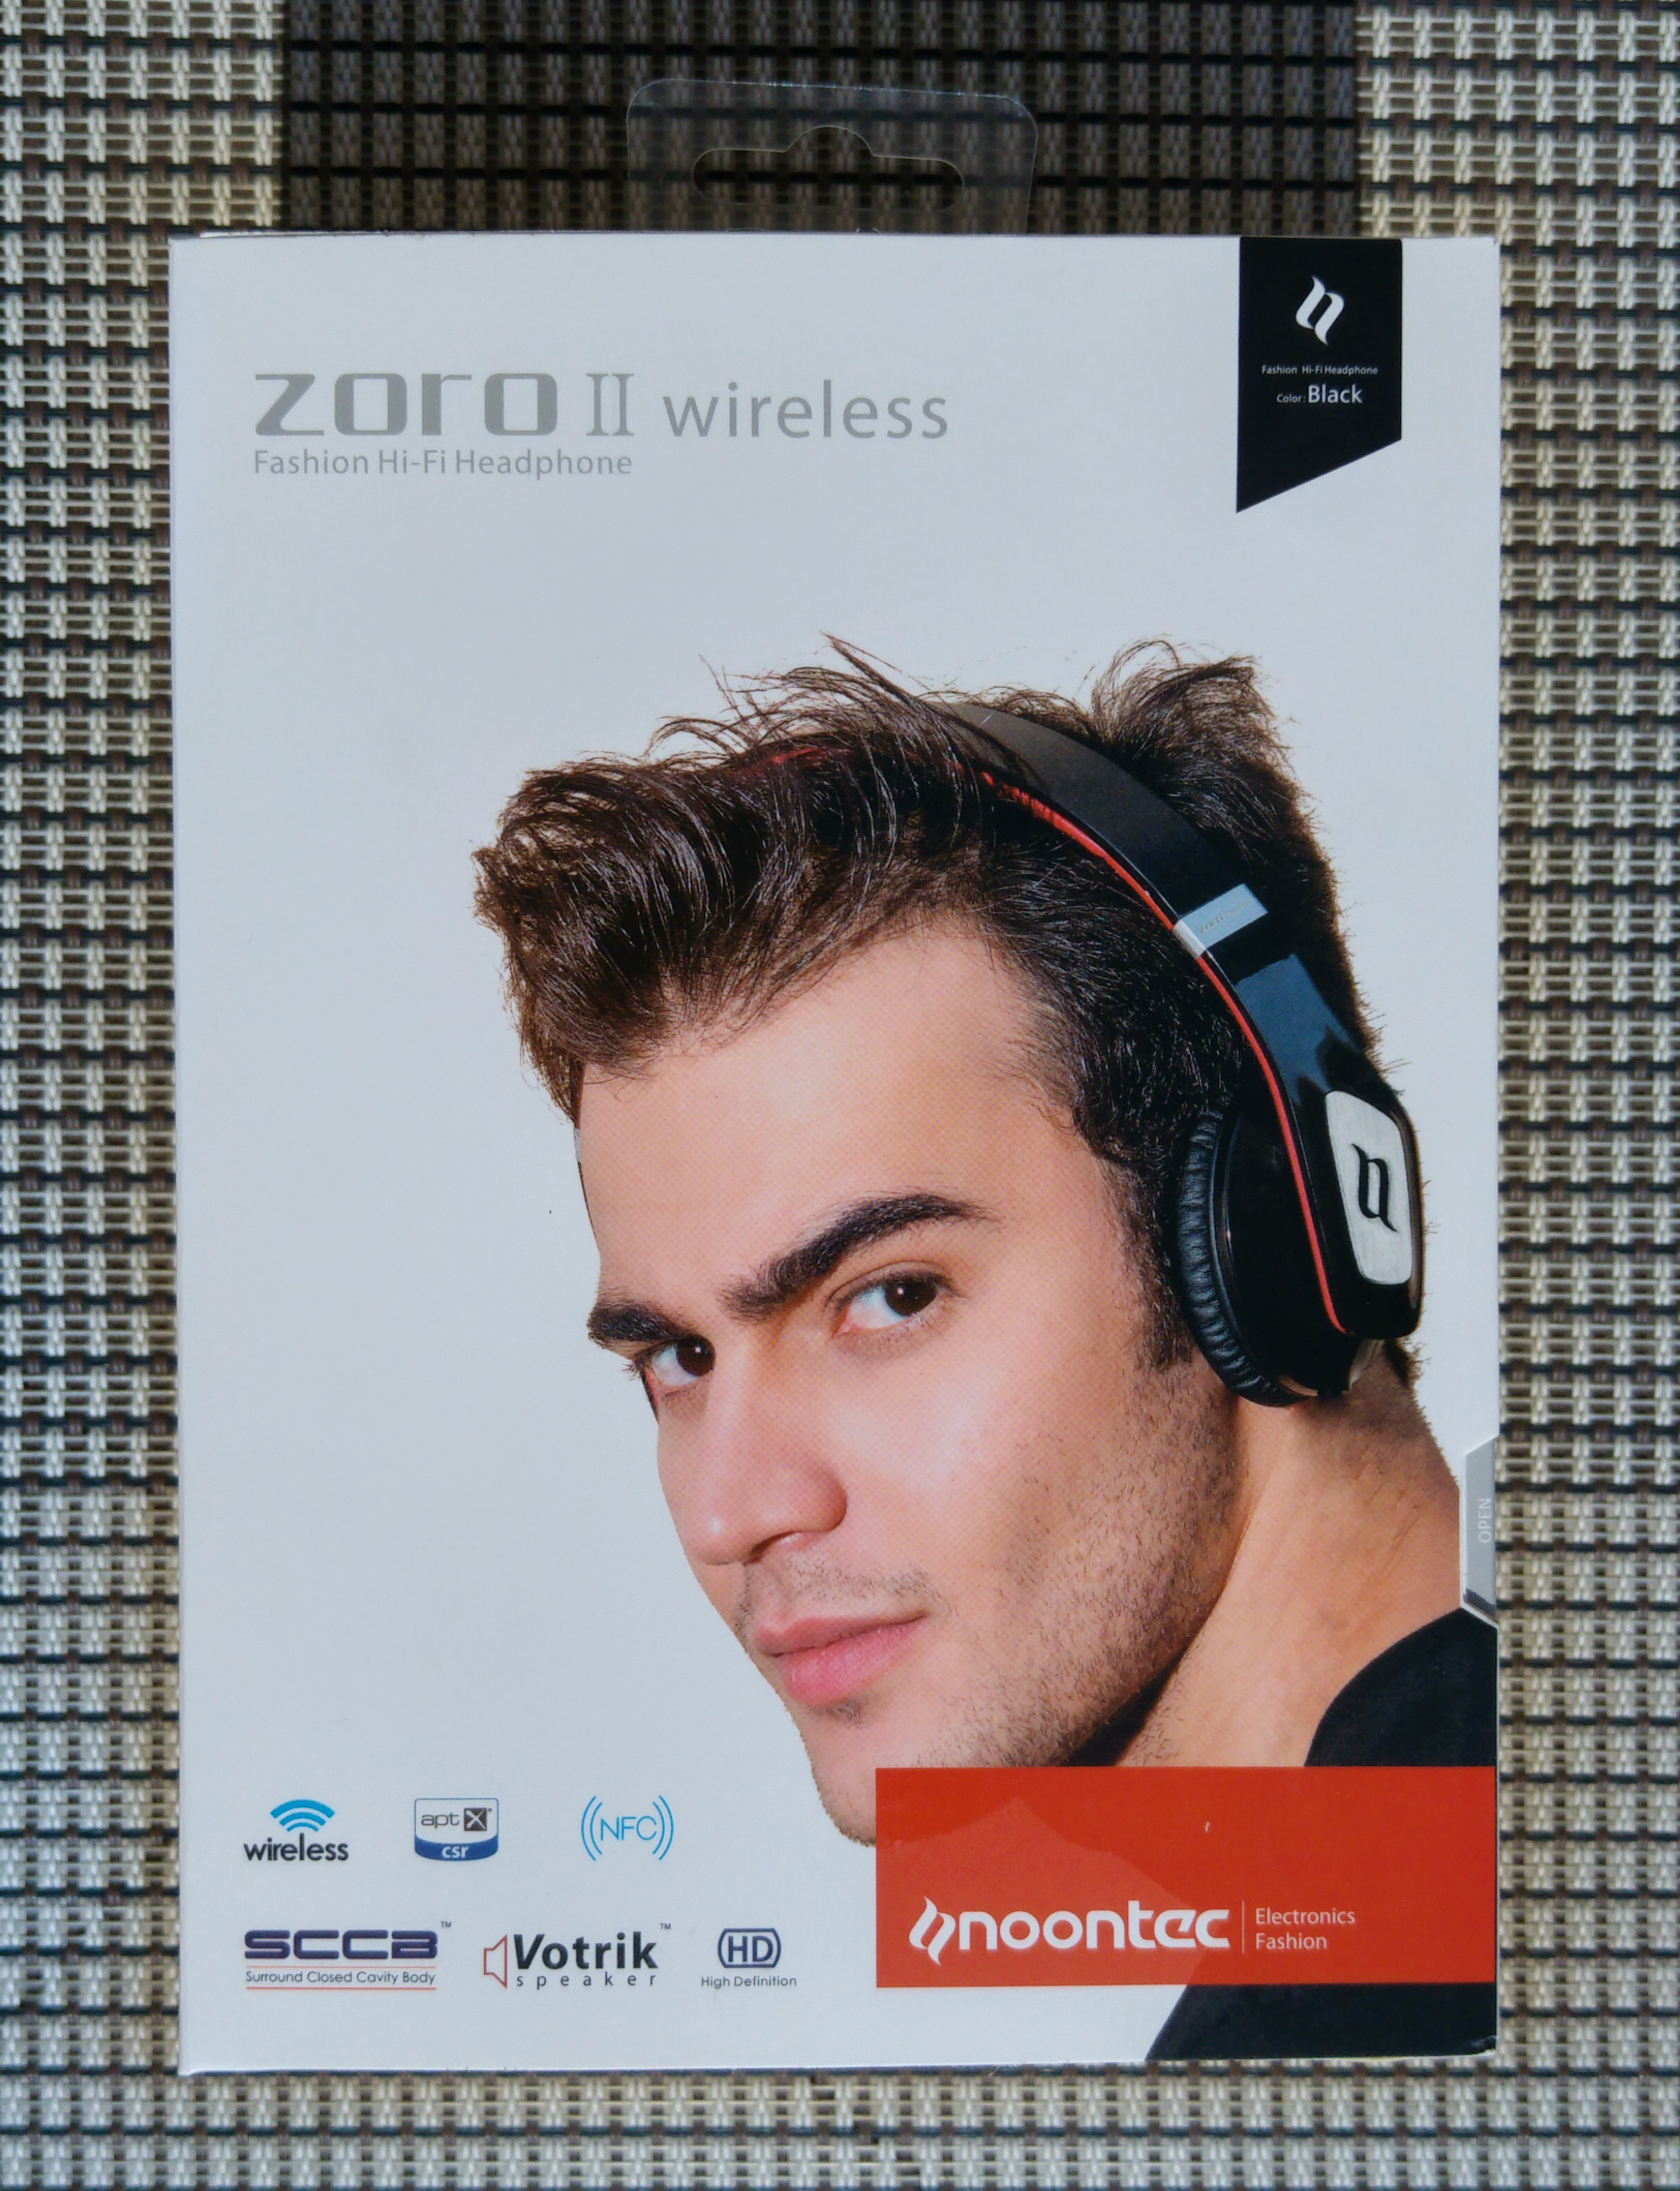 Noontec Zoro ii wireless 5